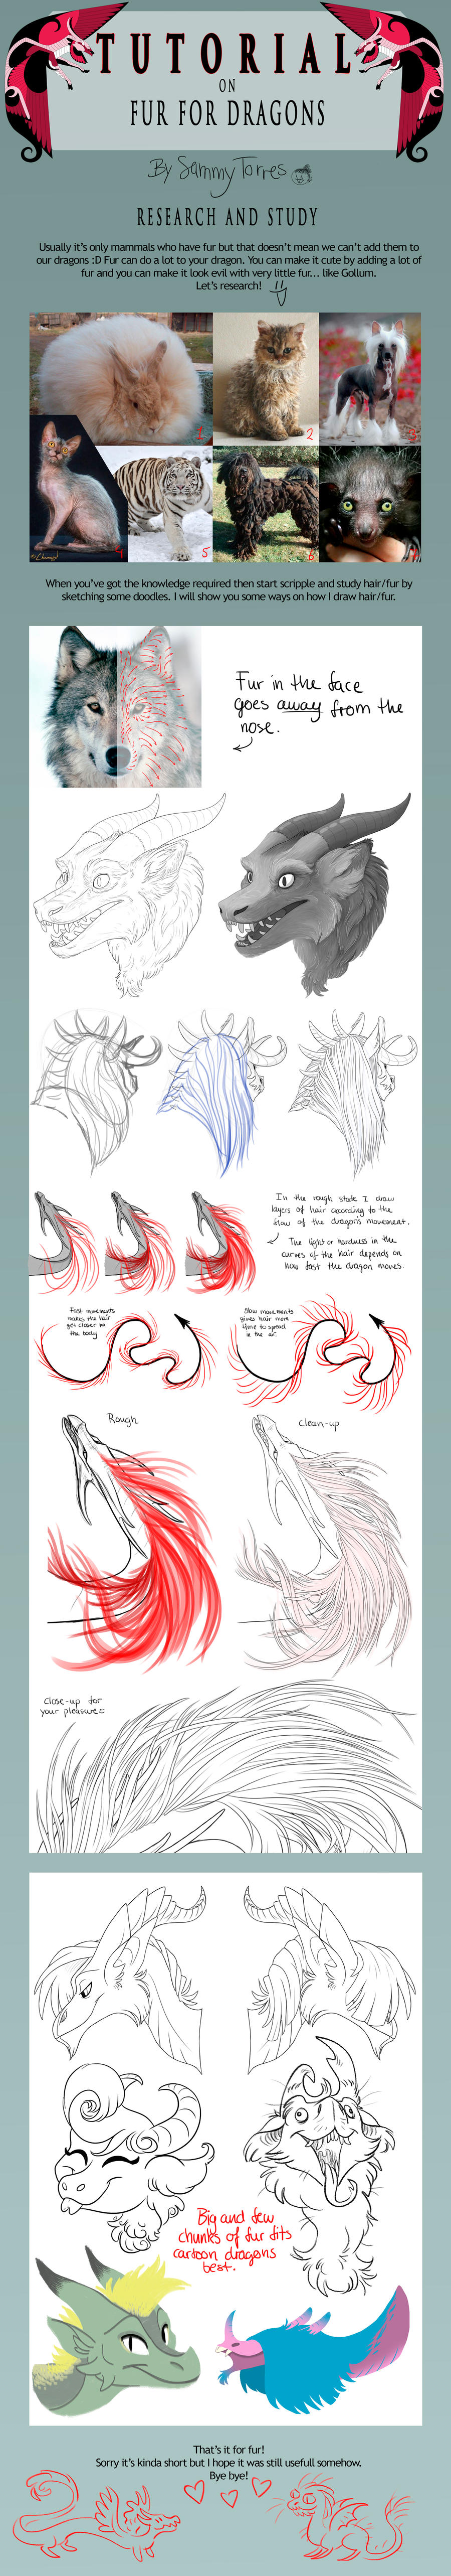 TUTORIAL: Fur for Dragons by SammyTorres